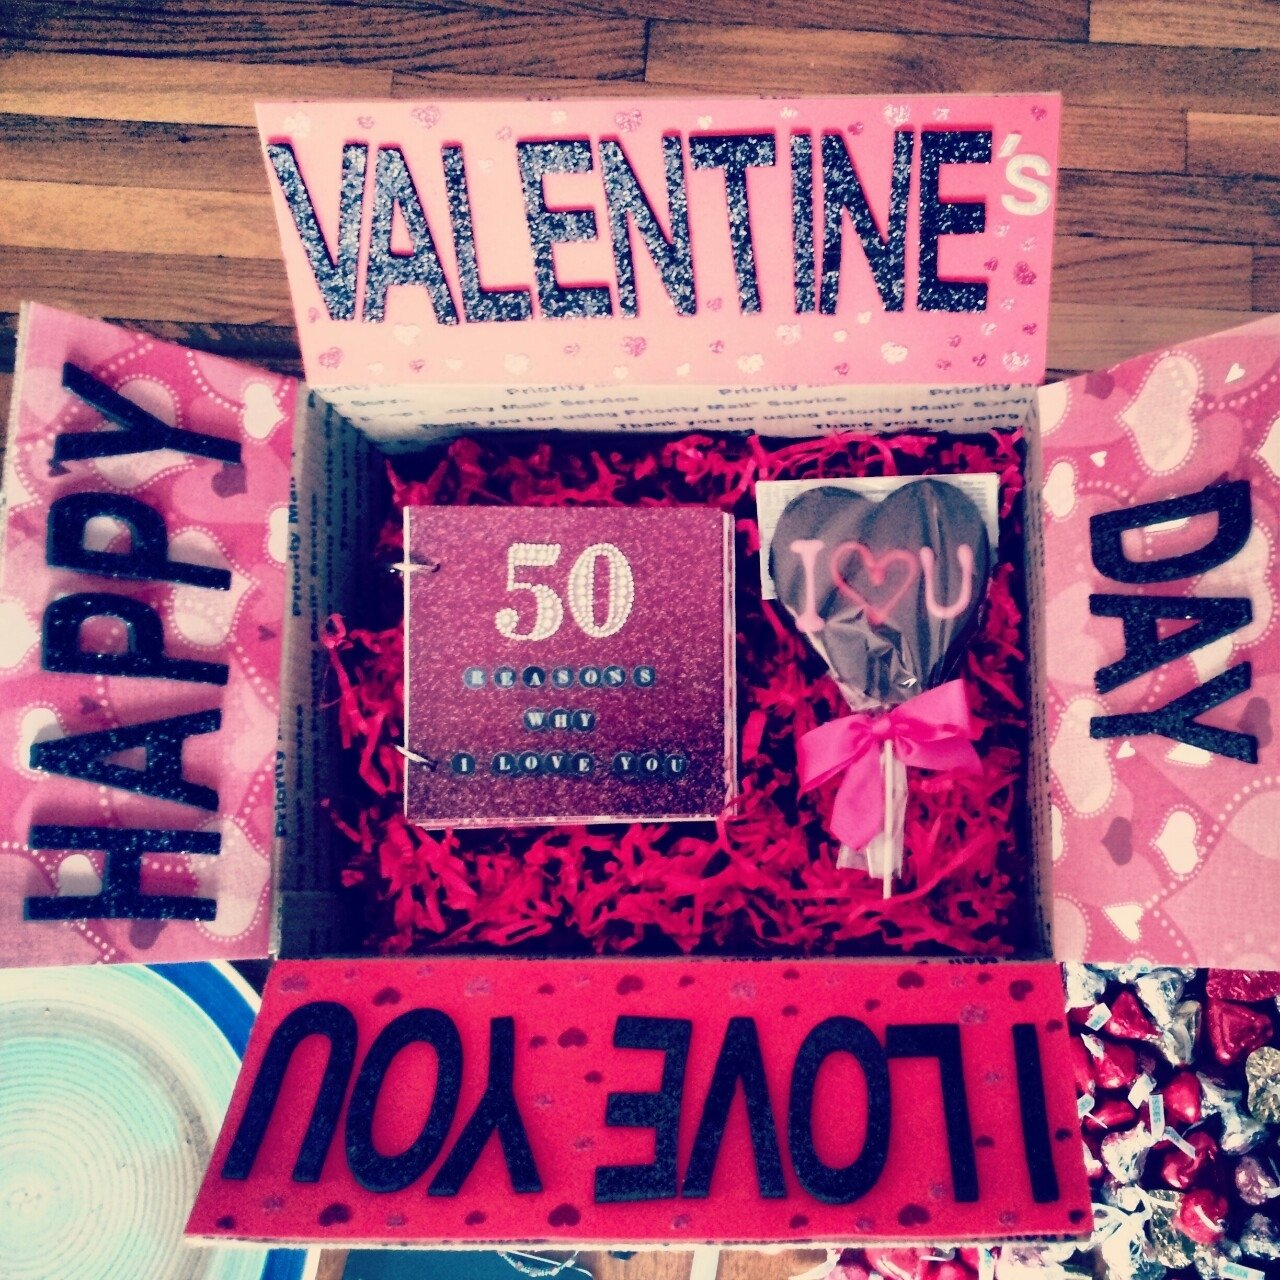 10 Wonderful Ideas For Valentines Day For Him caixa de presente ideias bonitas pinterest doors box and gift 3